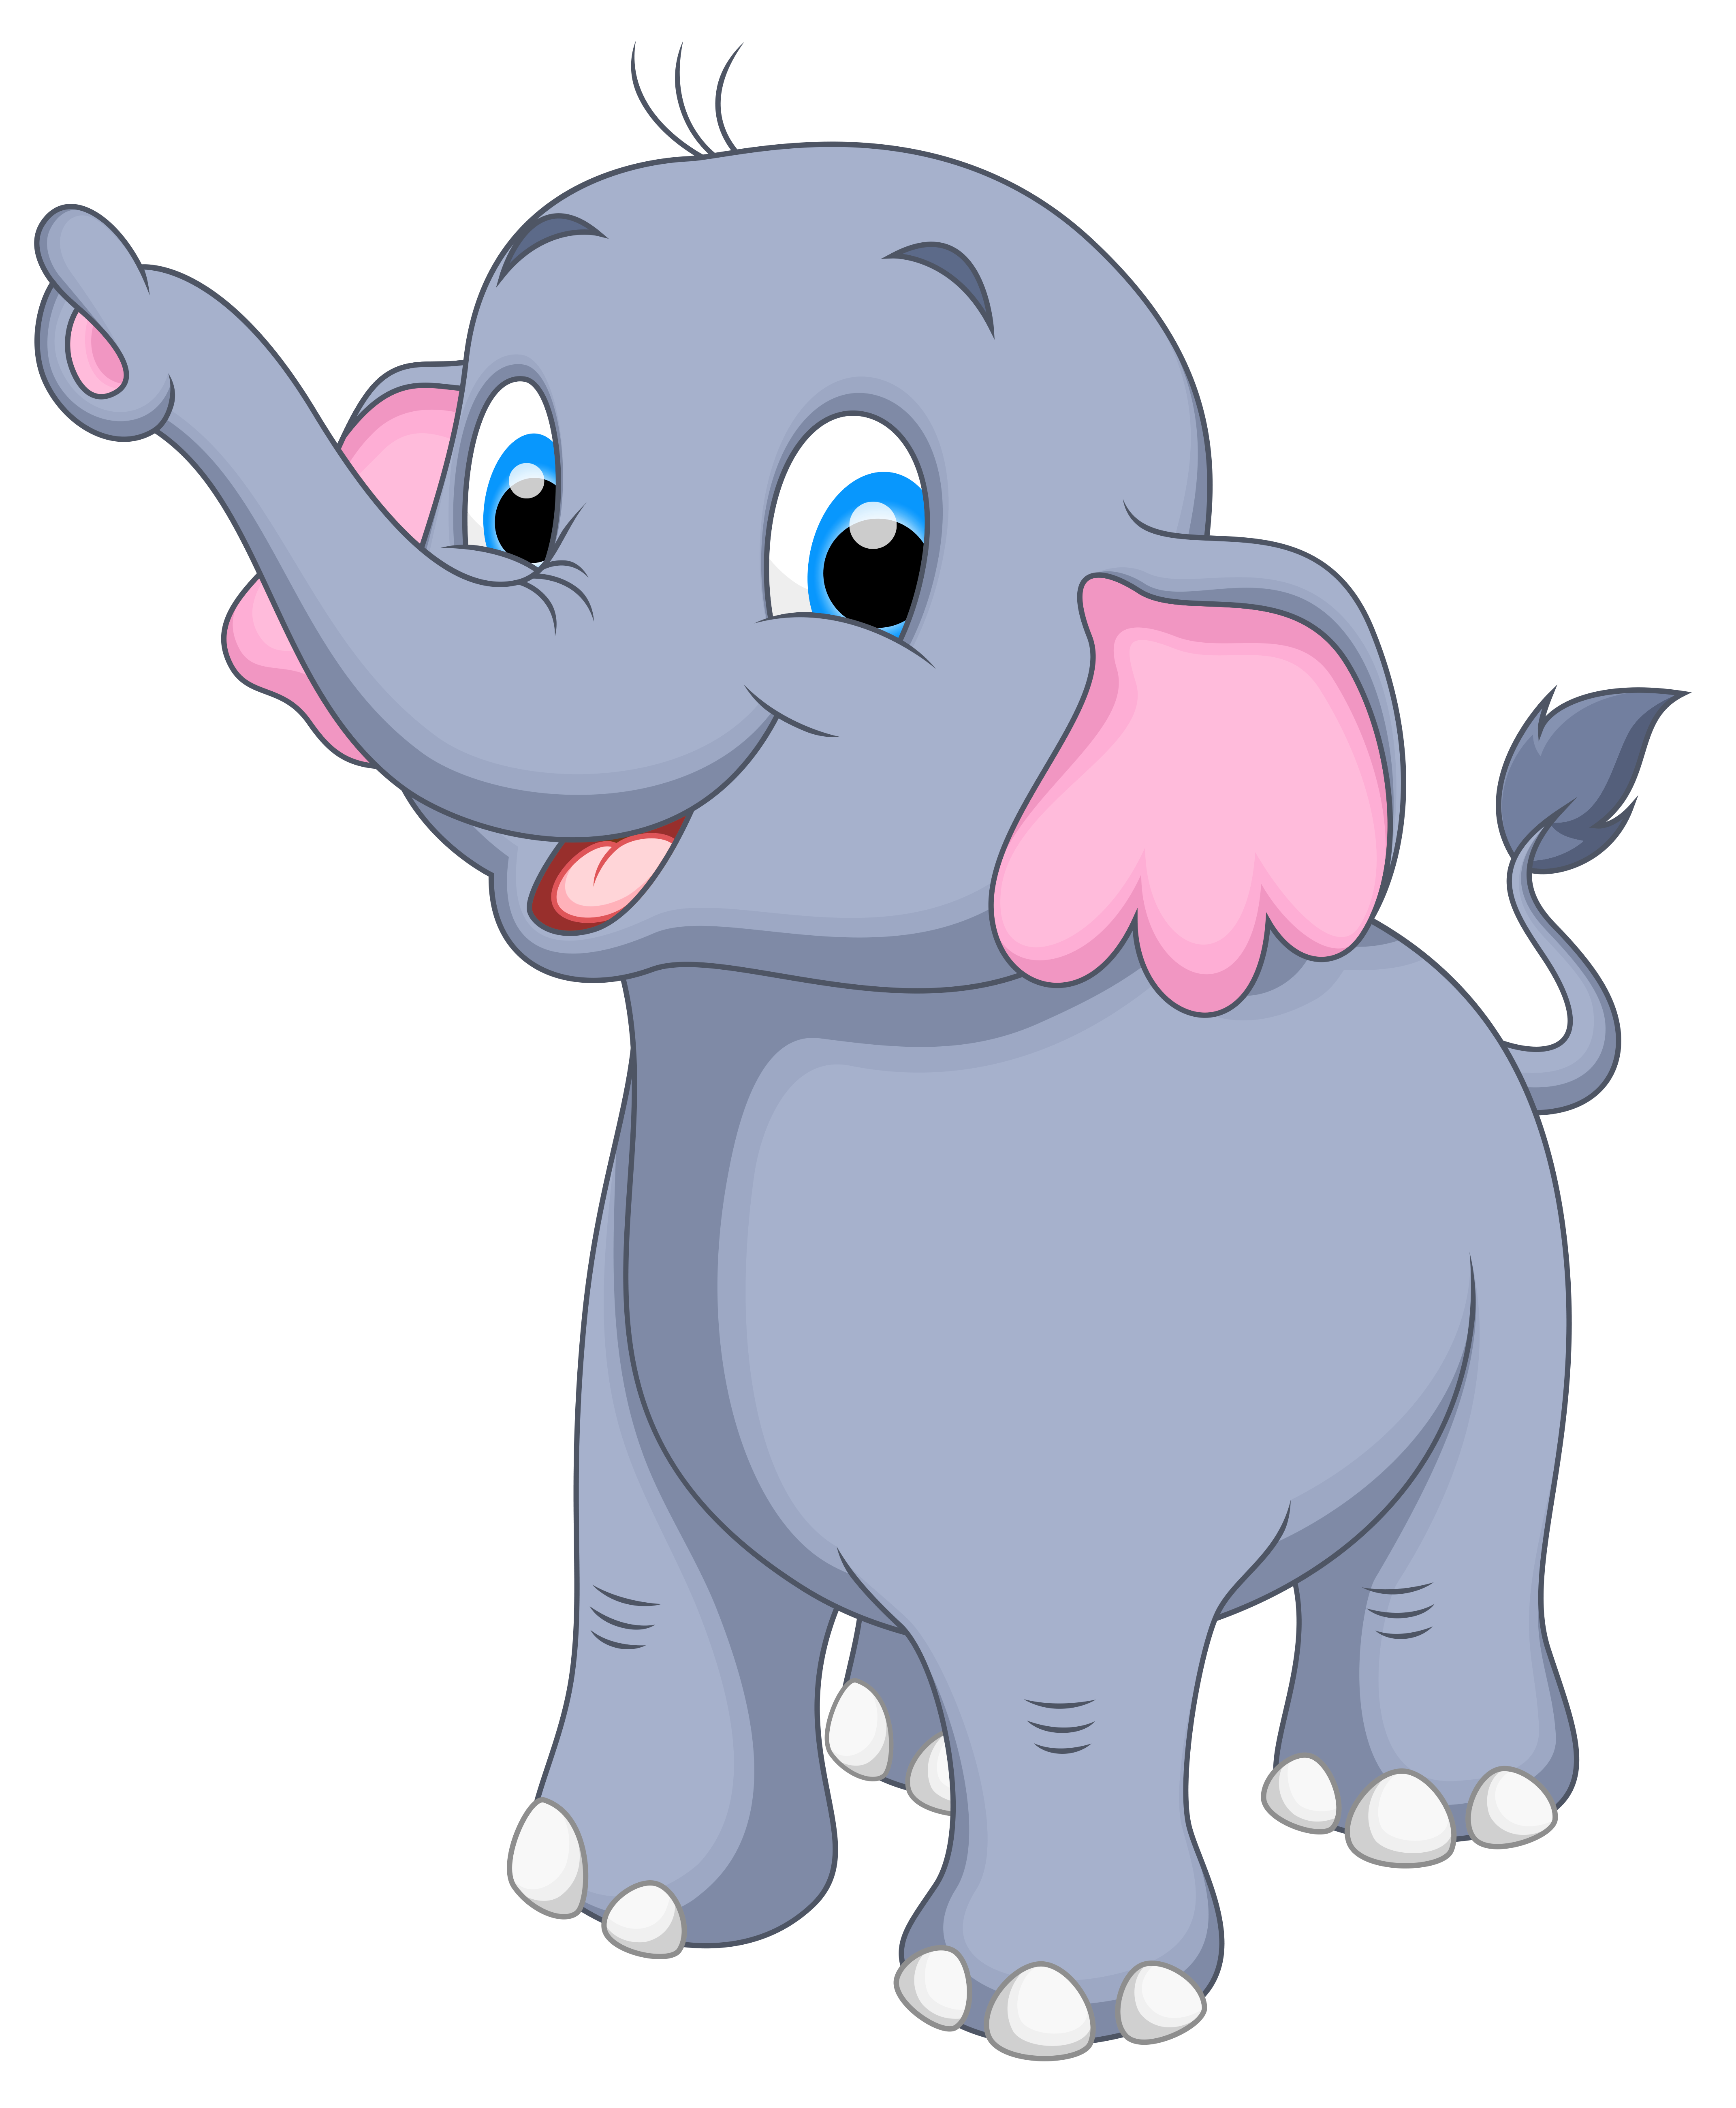 Elephant clipart #2, Download drawings